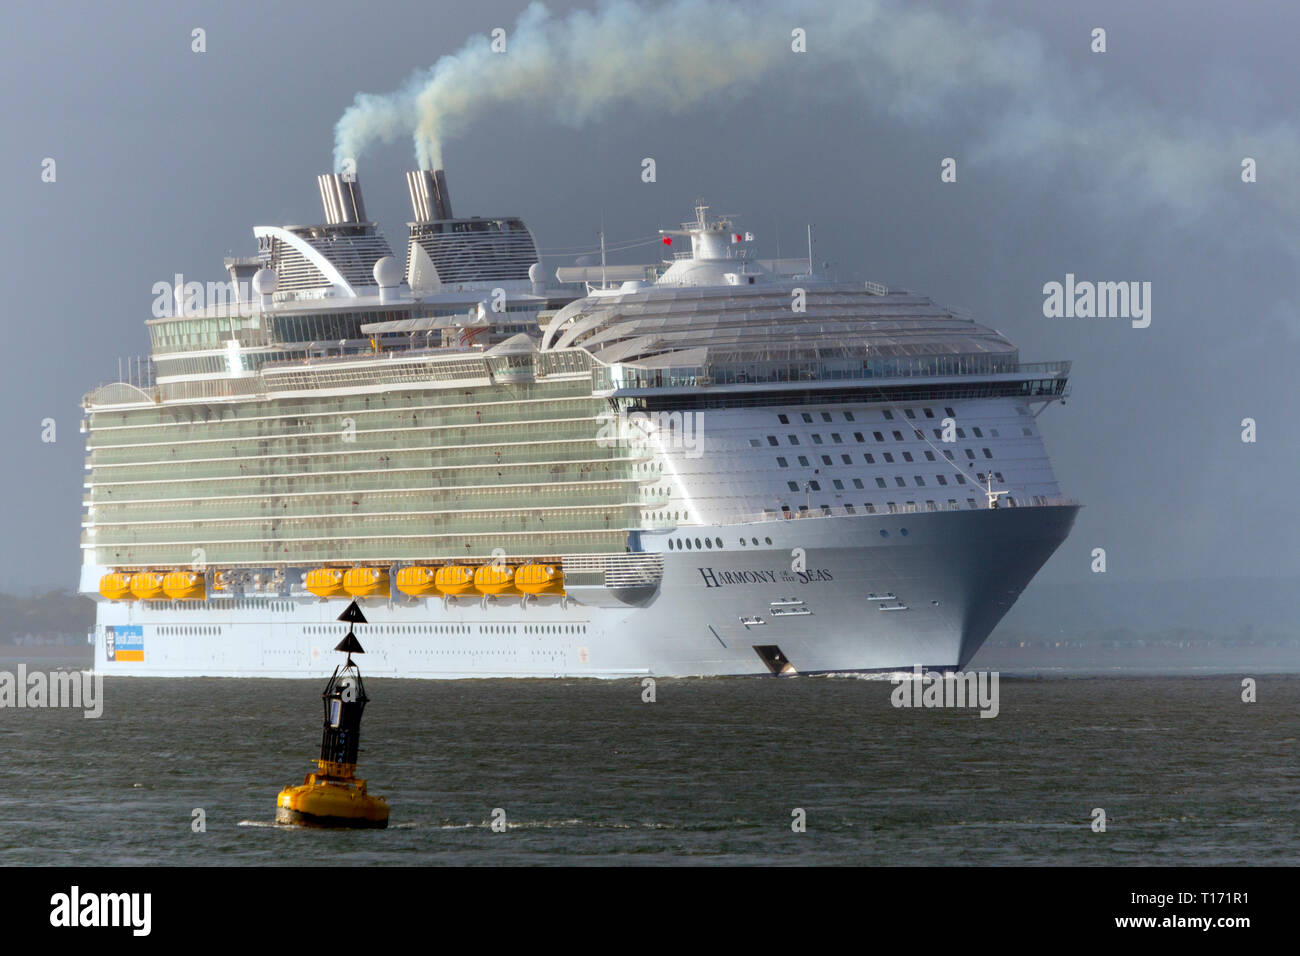 huge,massive,Pollution, Harmony of the Sea, Cruise Liner, ship, Cowes, Isle of Wight, The Solent,leaving,Southampton,Port,Terminal,England, UK, - Stock Image